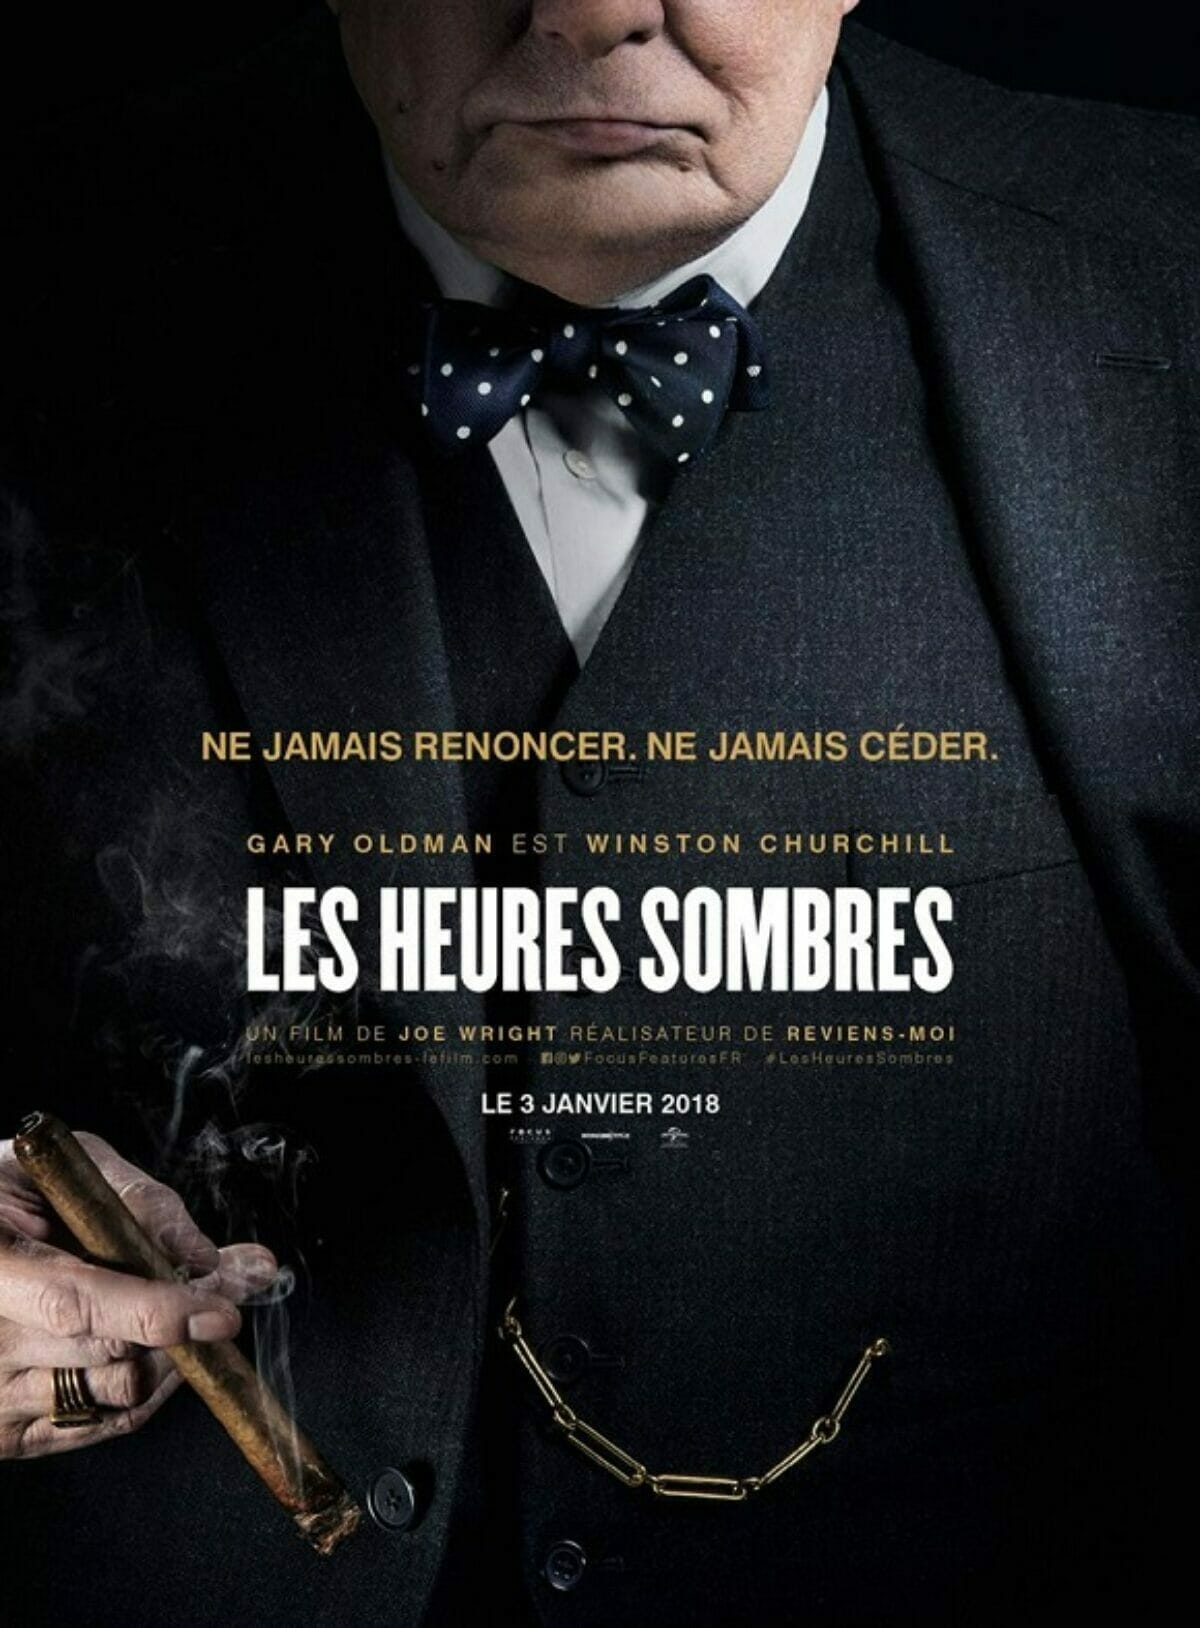 Les-heures-sombres-poster